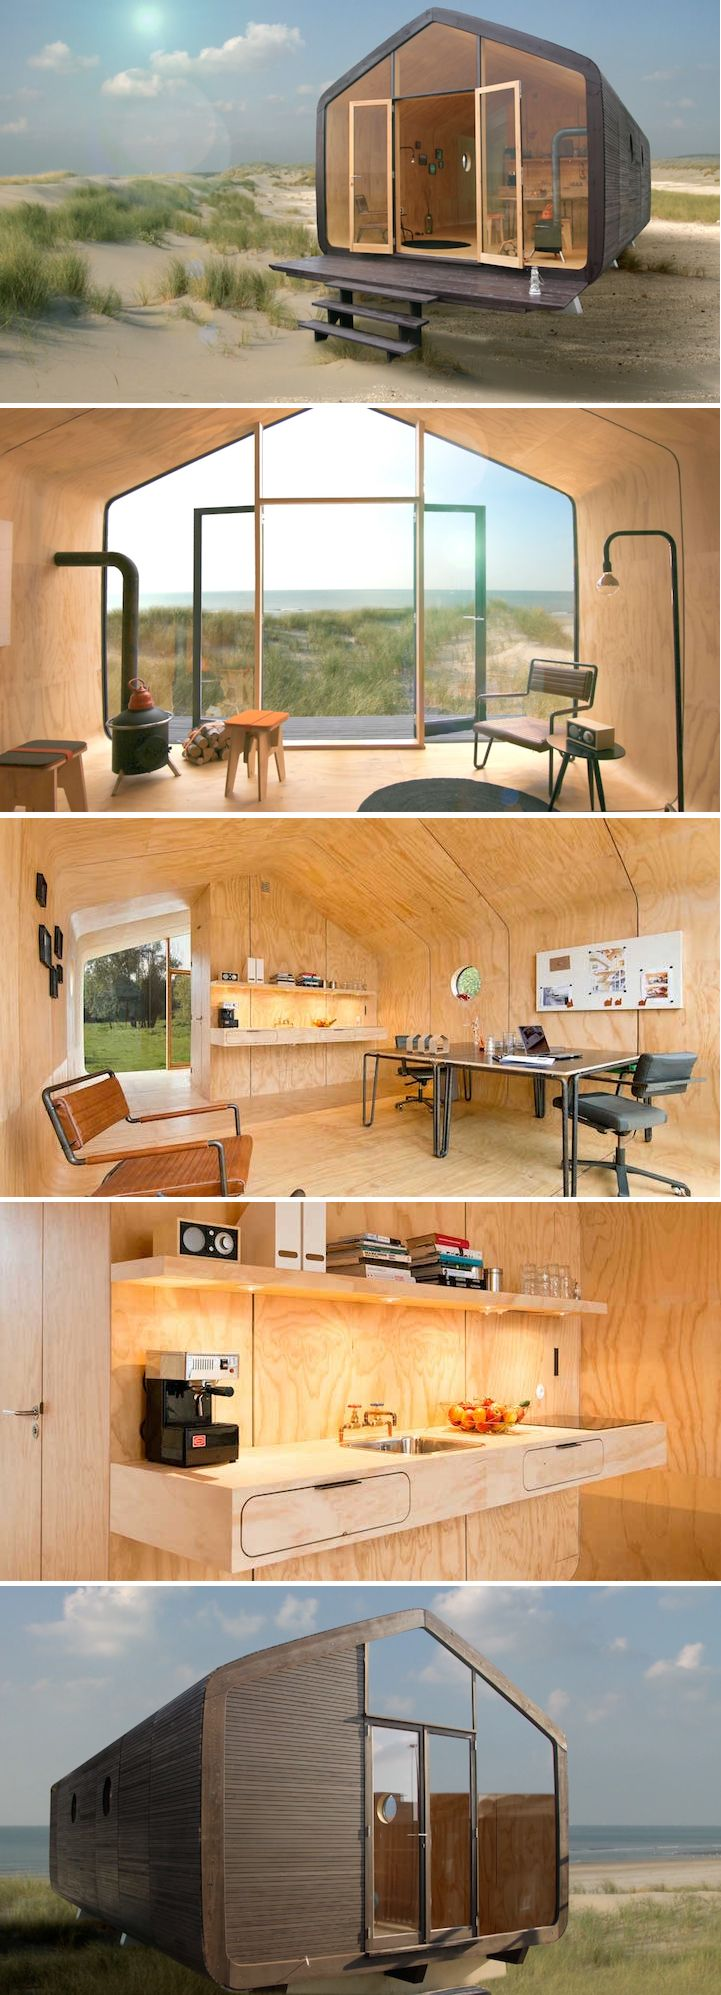 Interior design challenge eco home - The 25 Best Sustainable Design Ideas On Pinterest Sustainable Architecture Urban News And Vertical Garden Design